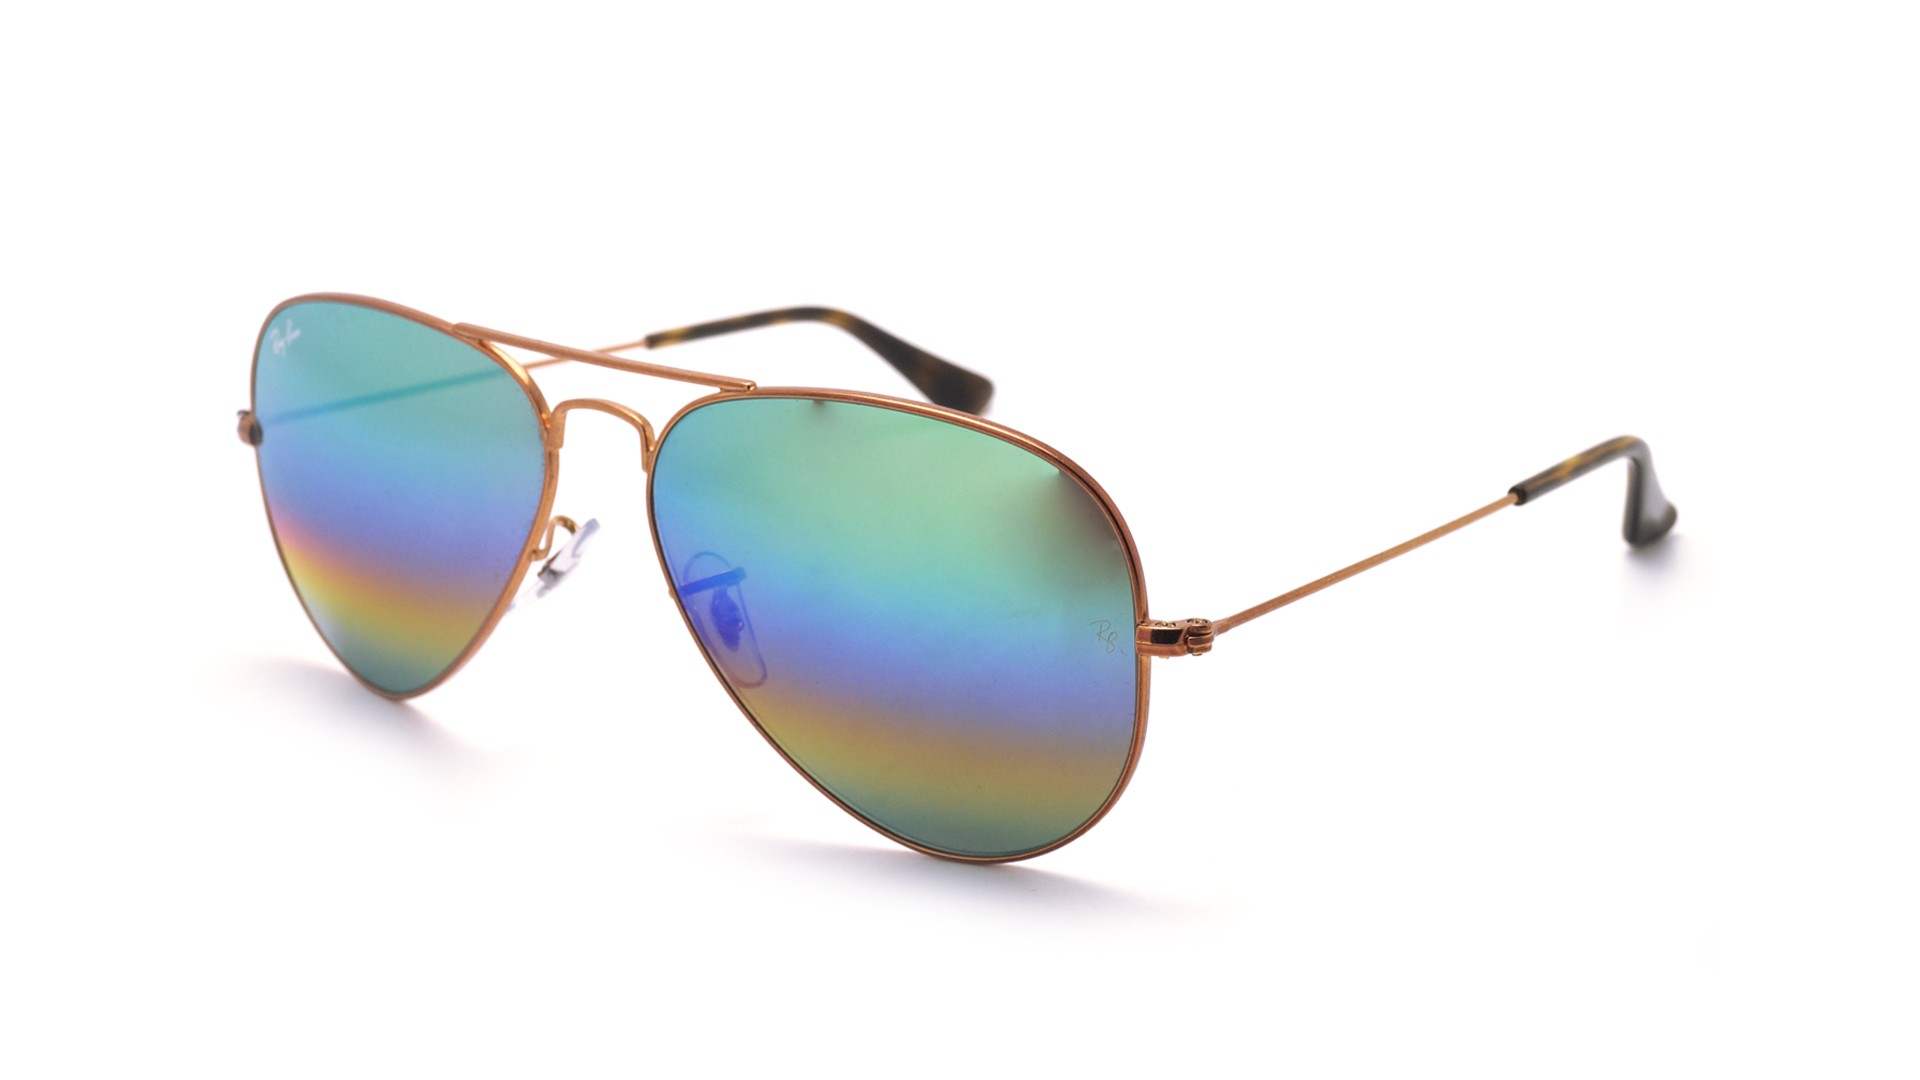 Ray ban aviator metal rainbow or mat rb3025 9018 c3 58 14 for Lunettes de soleil ray ban aviator miroir